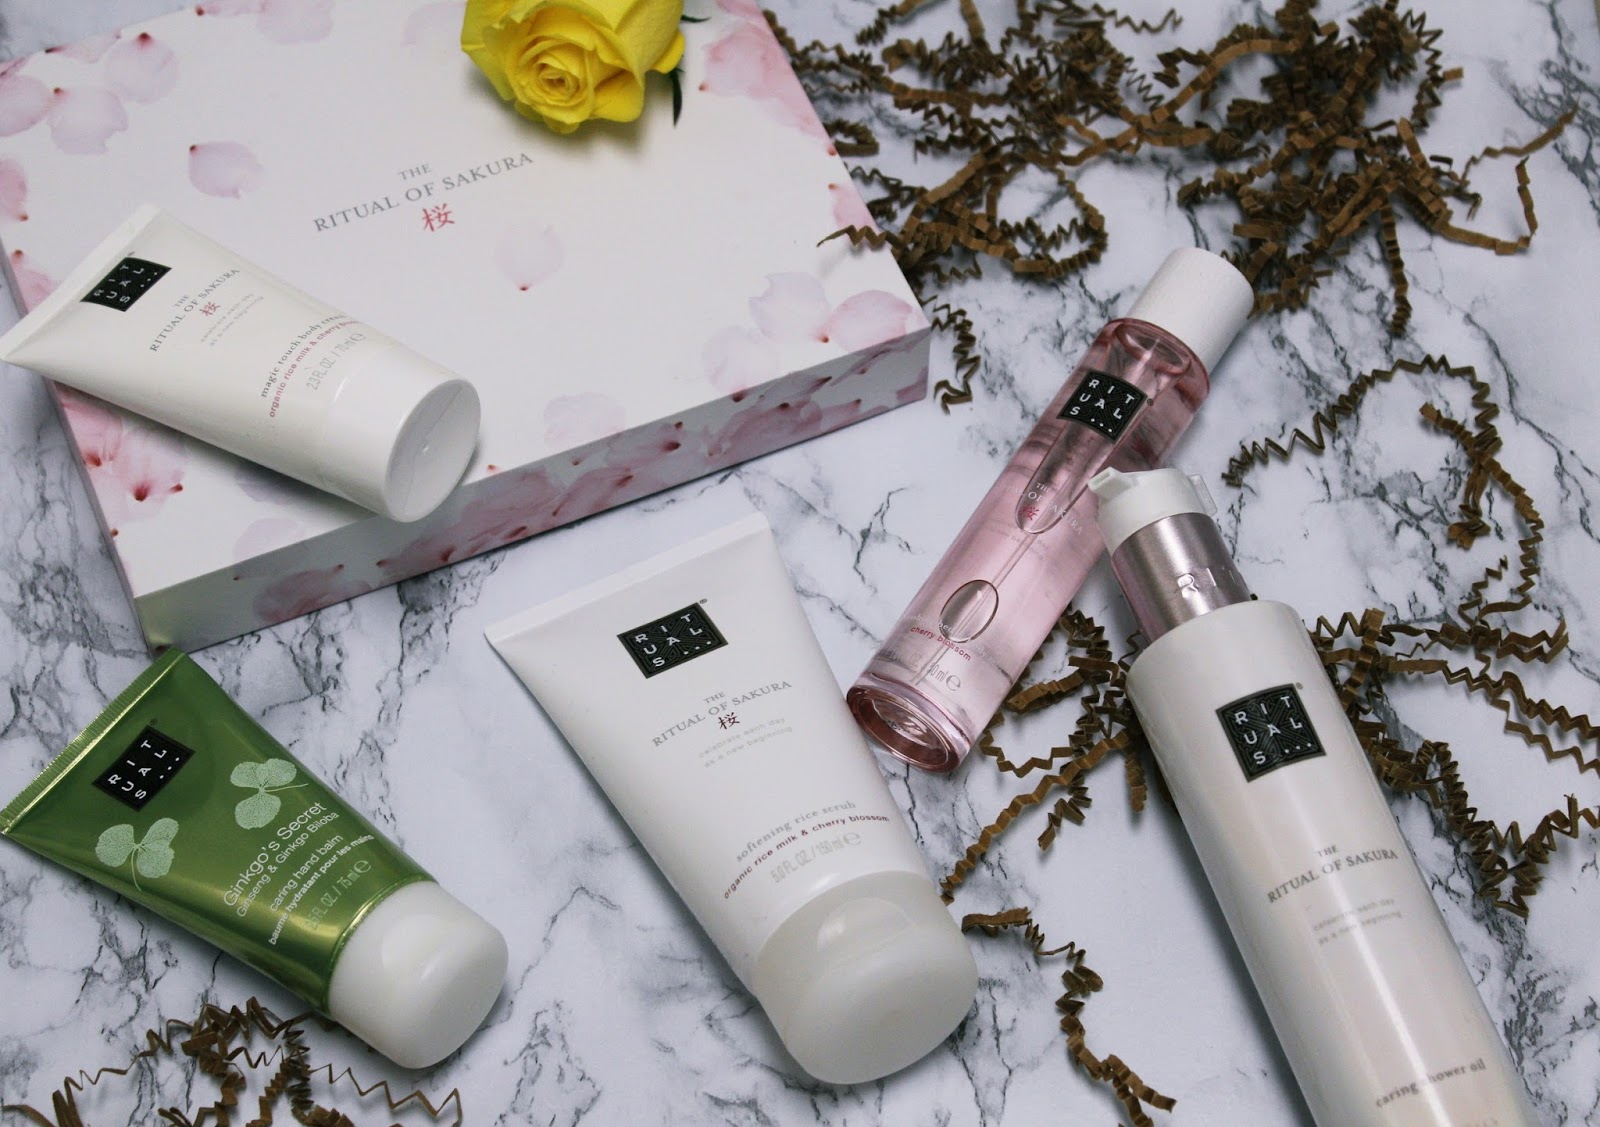 glossybox, rituals, beauty, skincare, subscription box, beauty box, sakura, glossybox x rituals